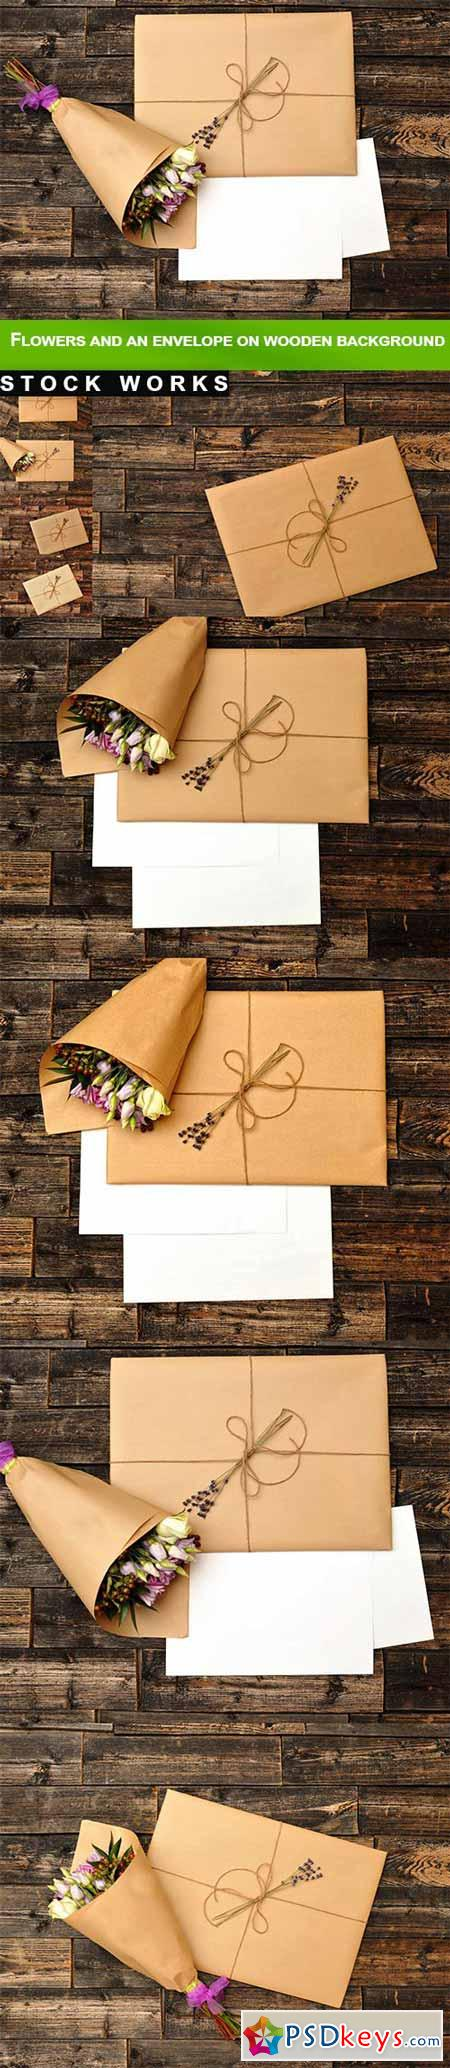 Flowers and an envelope on wooden background - 9 UHQ JPEG